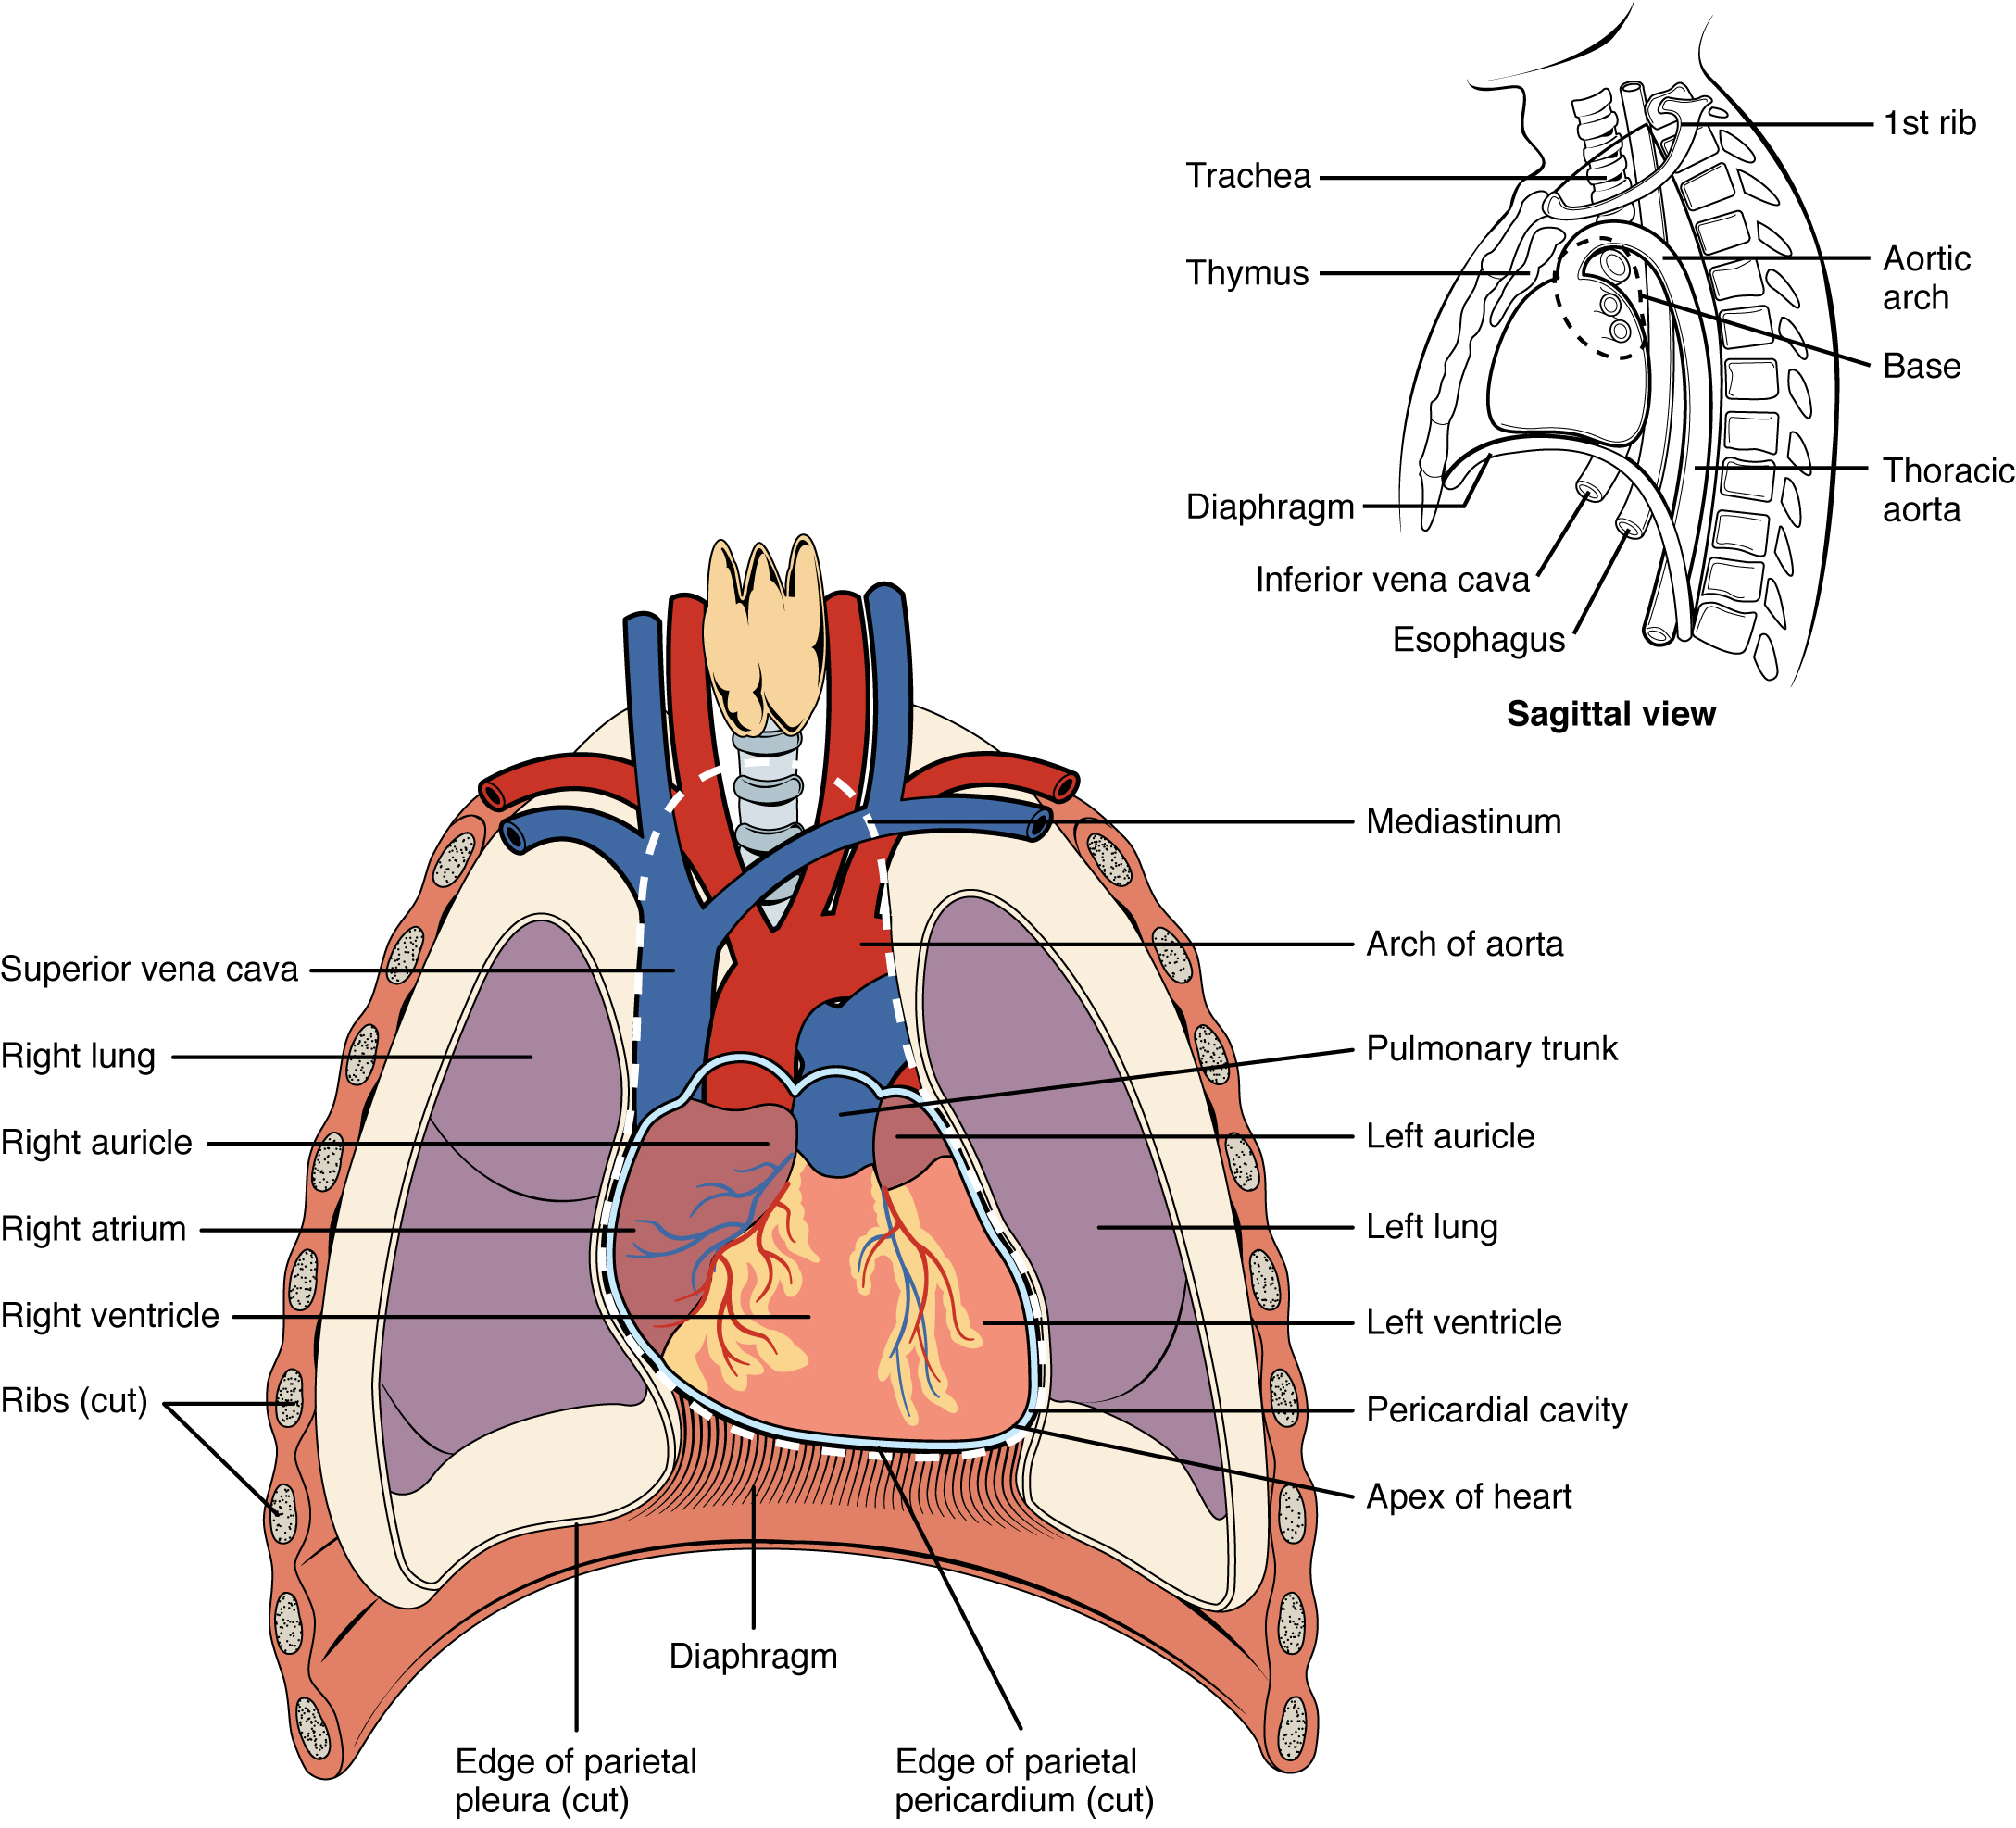 Cardiovascular System | Contemporary Health Issues